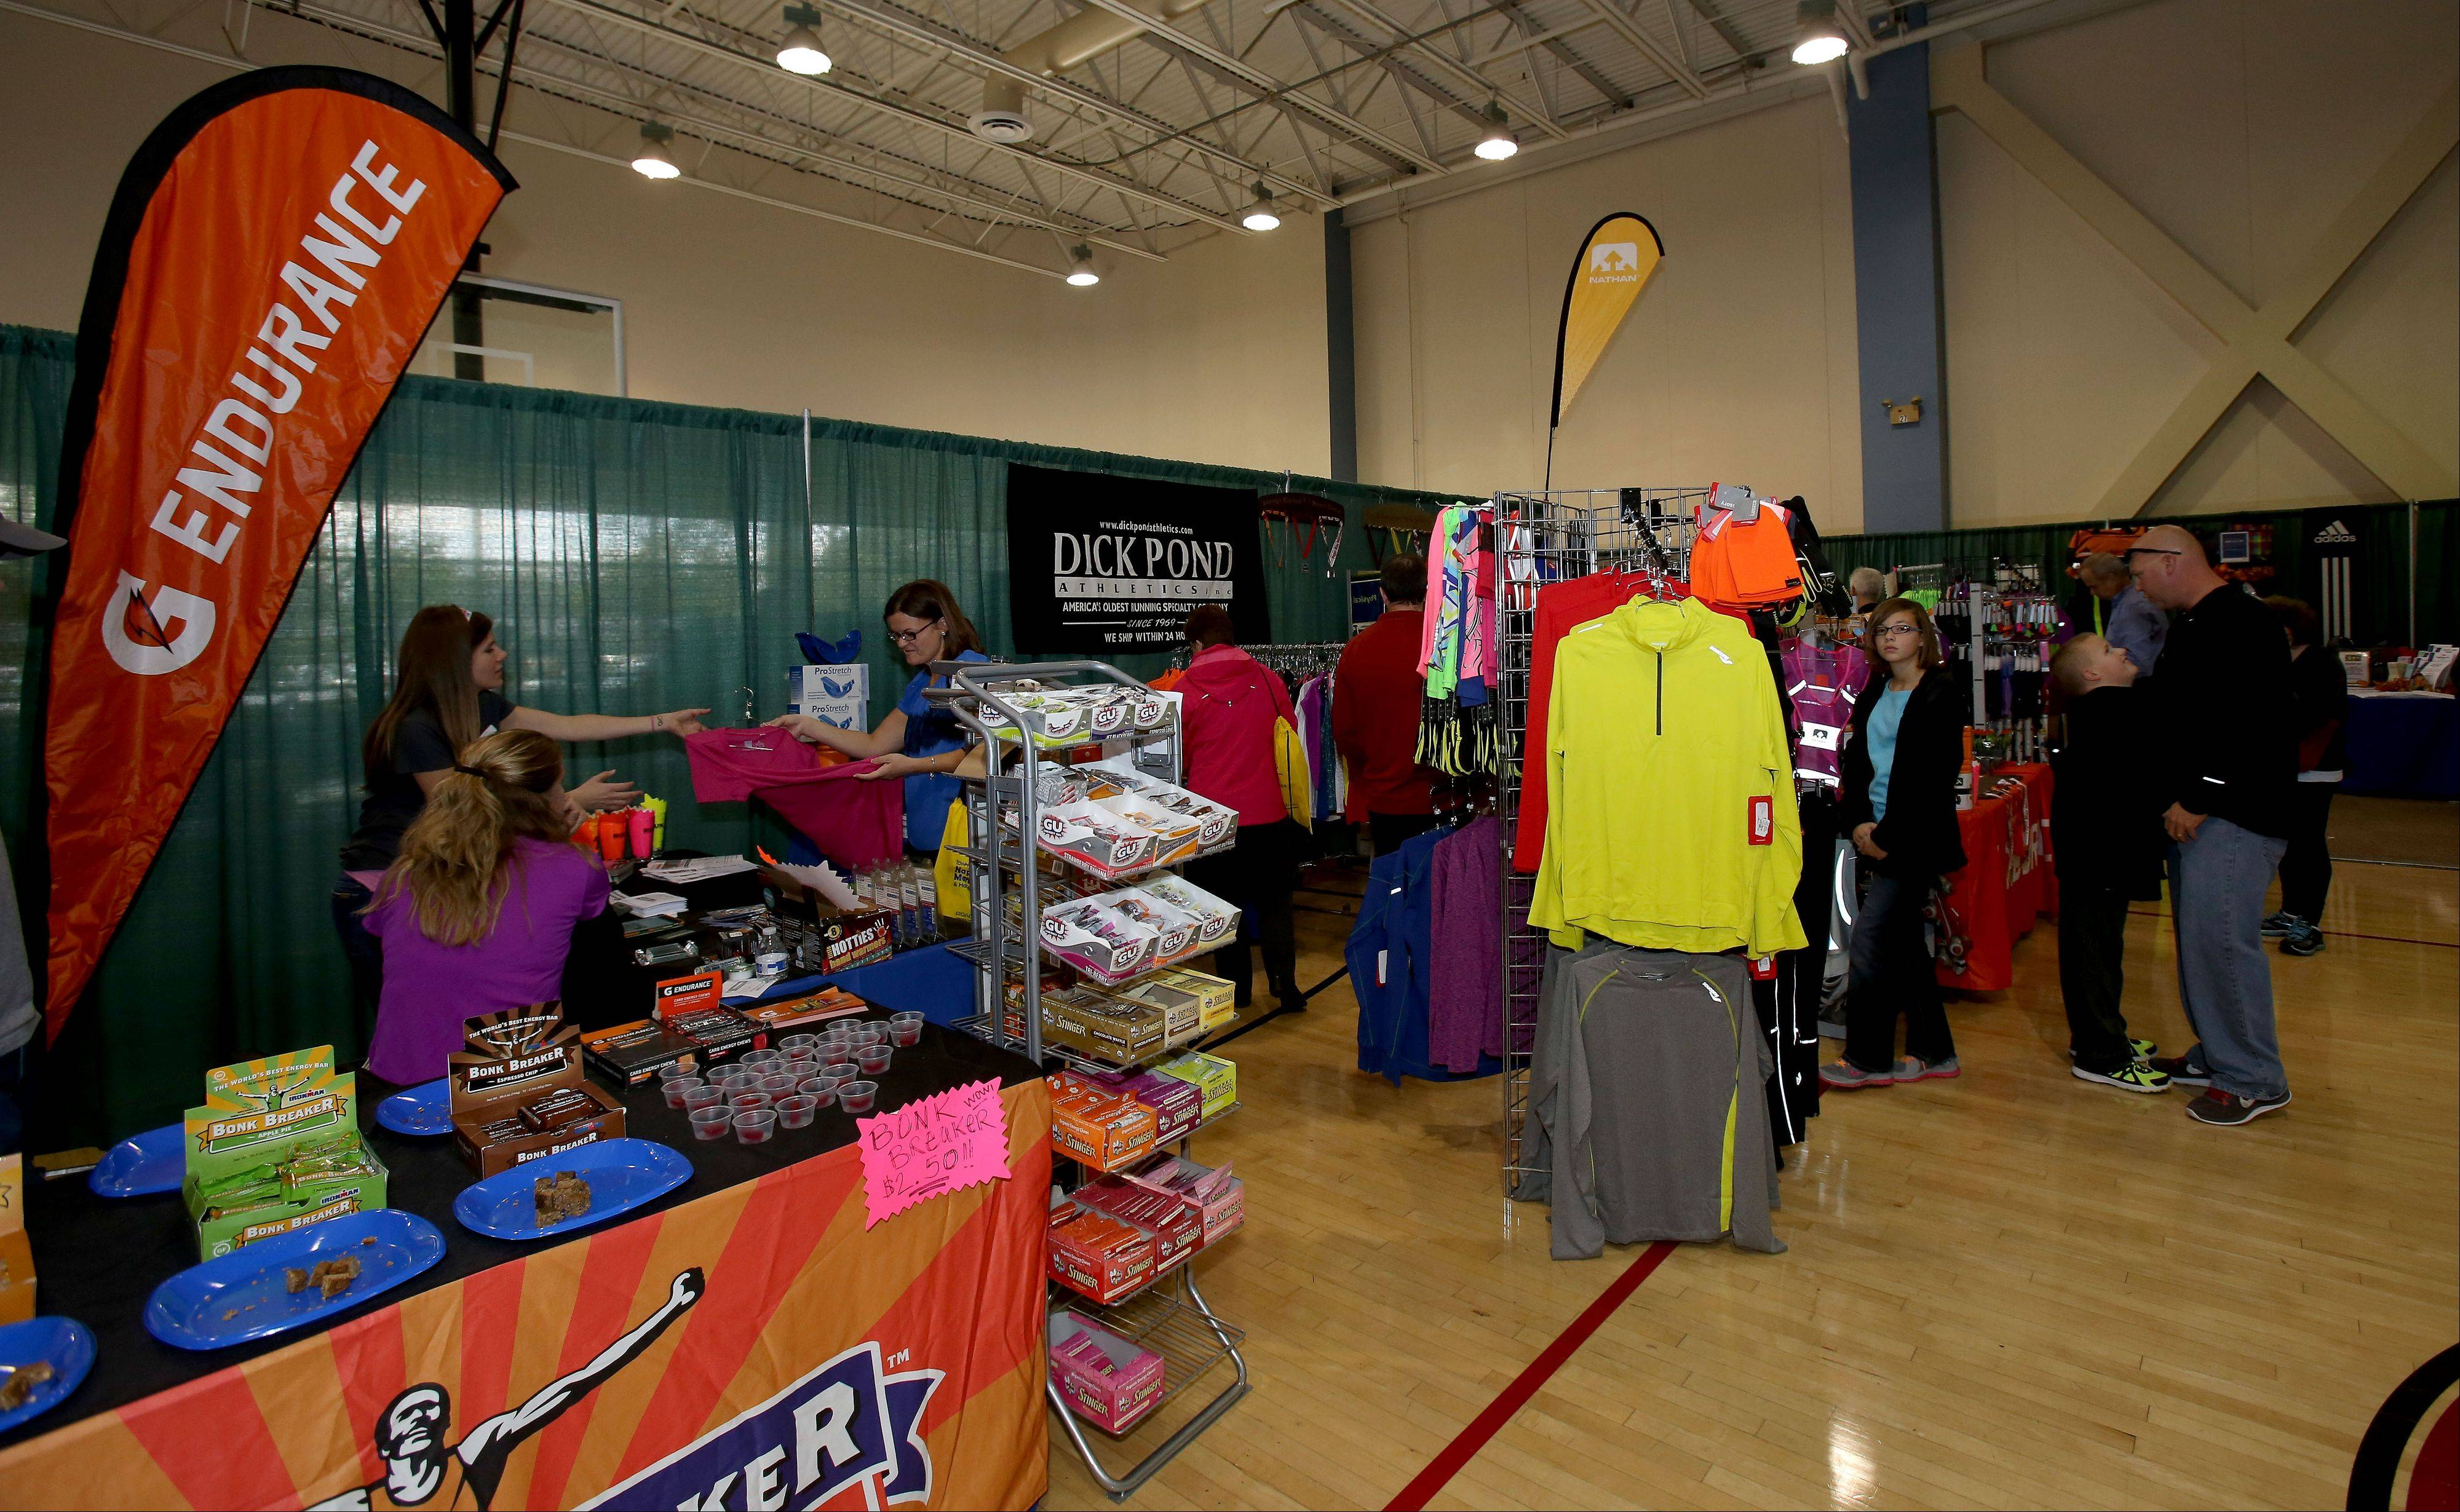 Runners in the inaugural Edward Hospital Naperville Marathon and Half Marathon are ready to race beginning at 7 a.m. Sunday at North Central College after picking up their packets and bibs at the race expo Friday and Saturday.